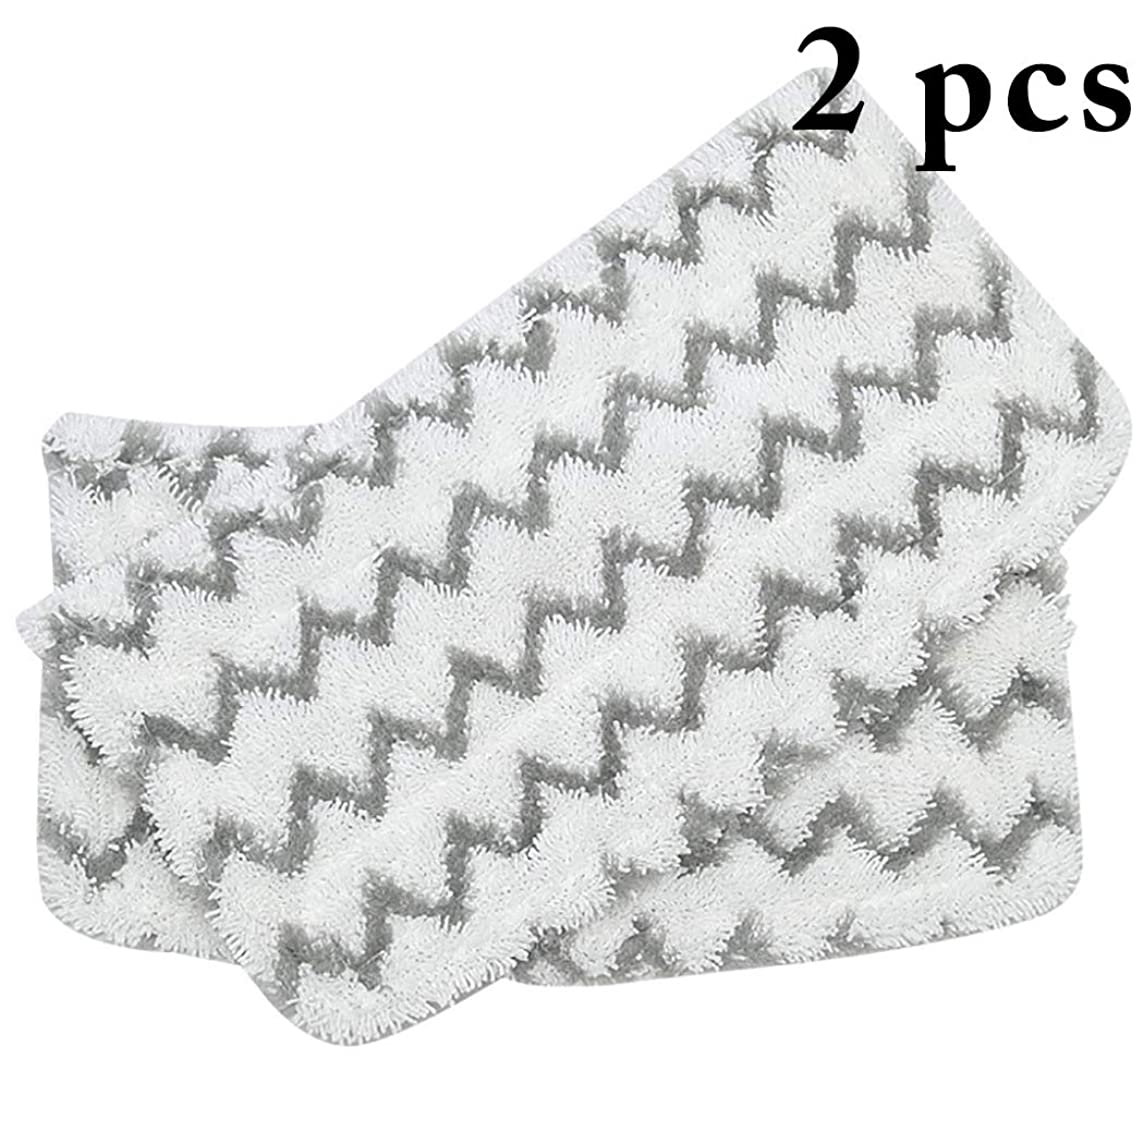 Fansport 2PCS Steam Mop Pad Replacement Mop Cleaning Pad for Shark S1000A